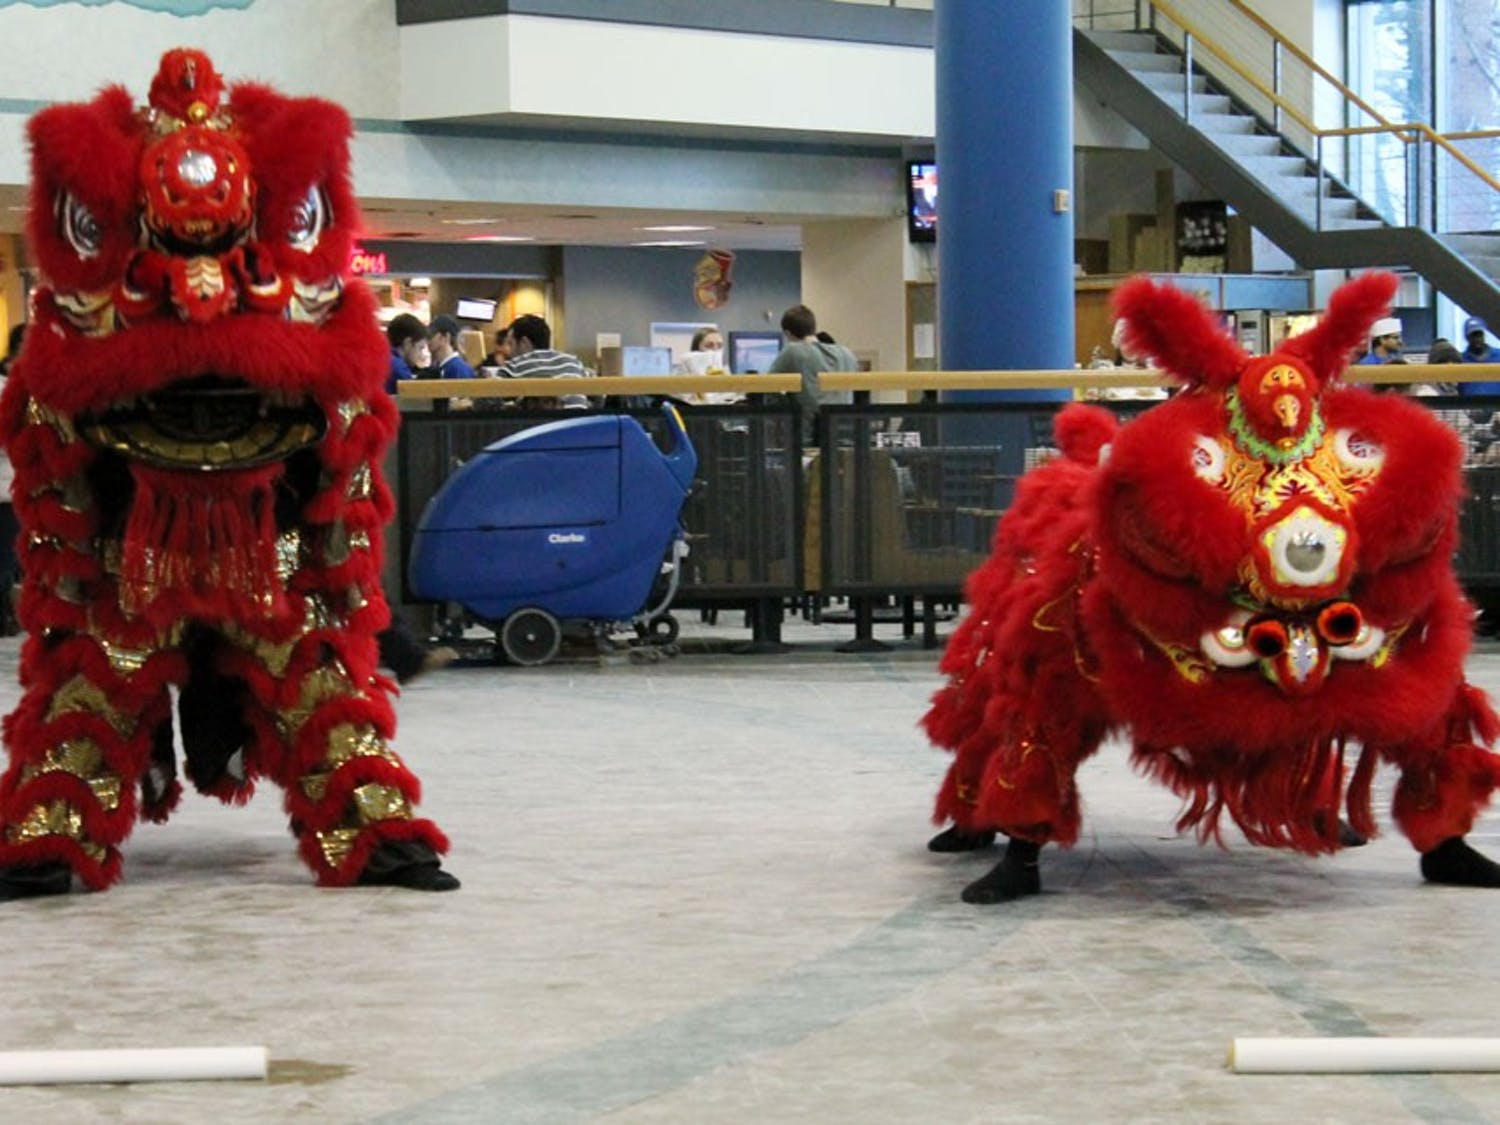 Chinese New Year began on ThursdayFeb. 19. This year marks year 4713 onthe Chinese calendar. The Confucius Institute and the Chinese Club of Western New York hosted a celebration in the Center For The Arts on Saturday Feb. 21 that included music, dances and various performances.